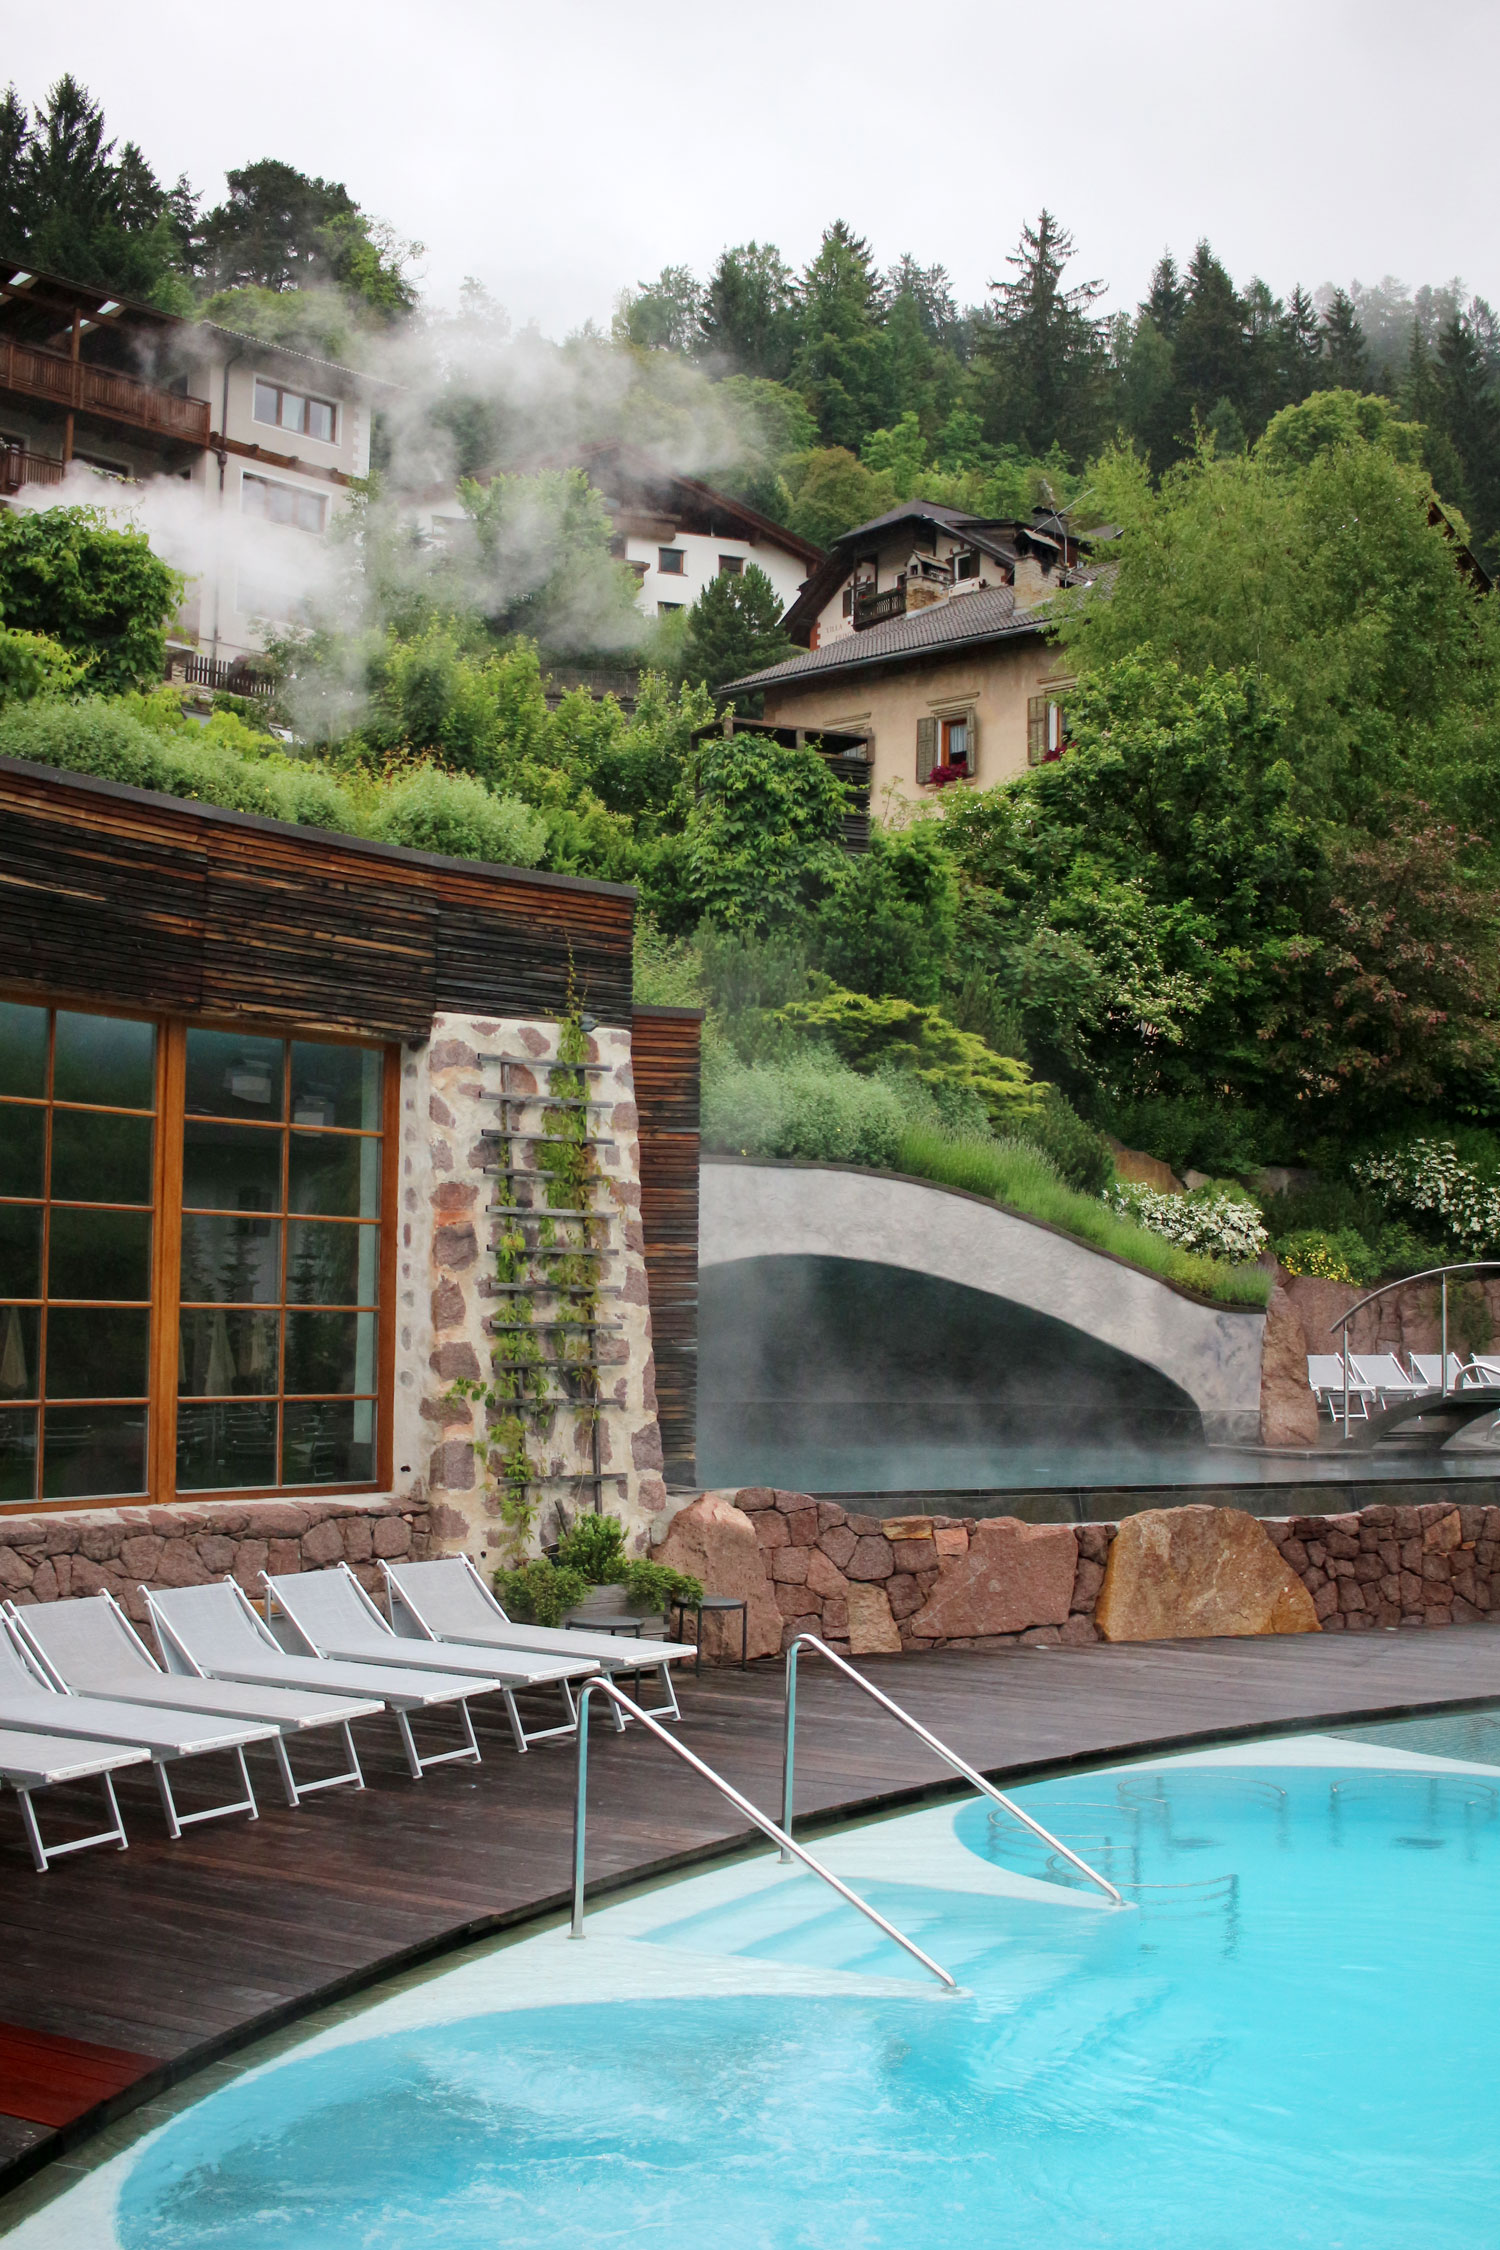 Italy-adler-dolomiti-hotel-spa-resort-review-travel-blogger-62